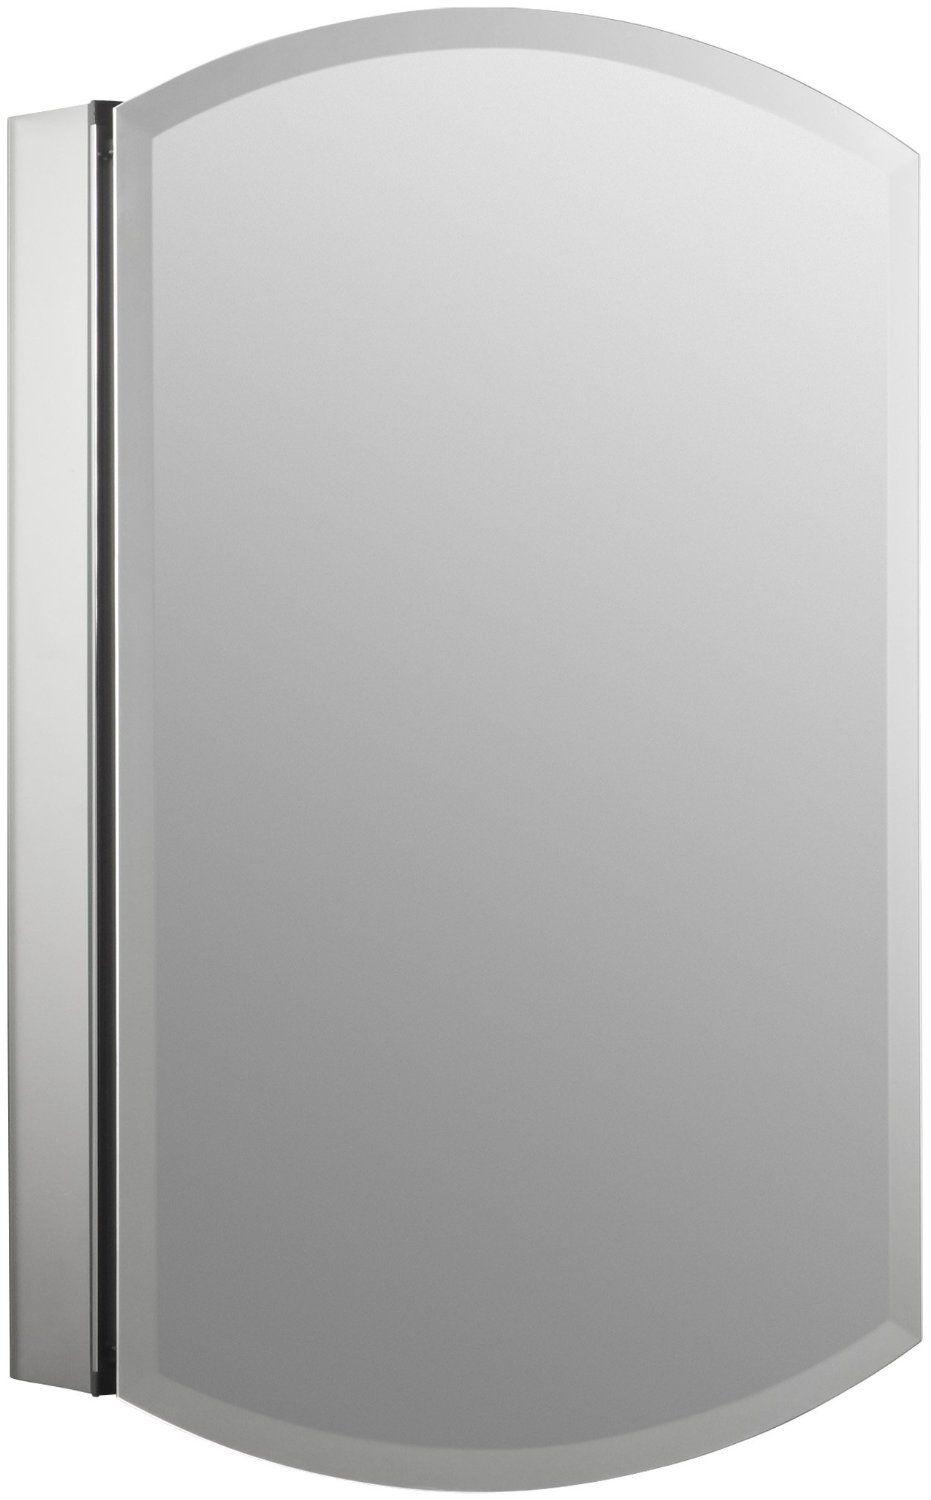 Kohler K 3073 Na Archer Mirrored Cabinet Appliance Replacement Parts Amazon Com Mirror Cabinets Bathroom Medicine Cabinet Tempered Glass Shelves